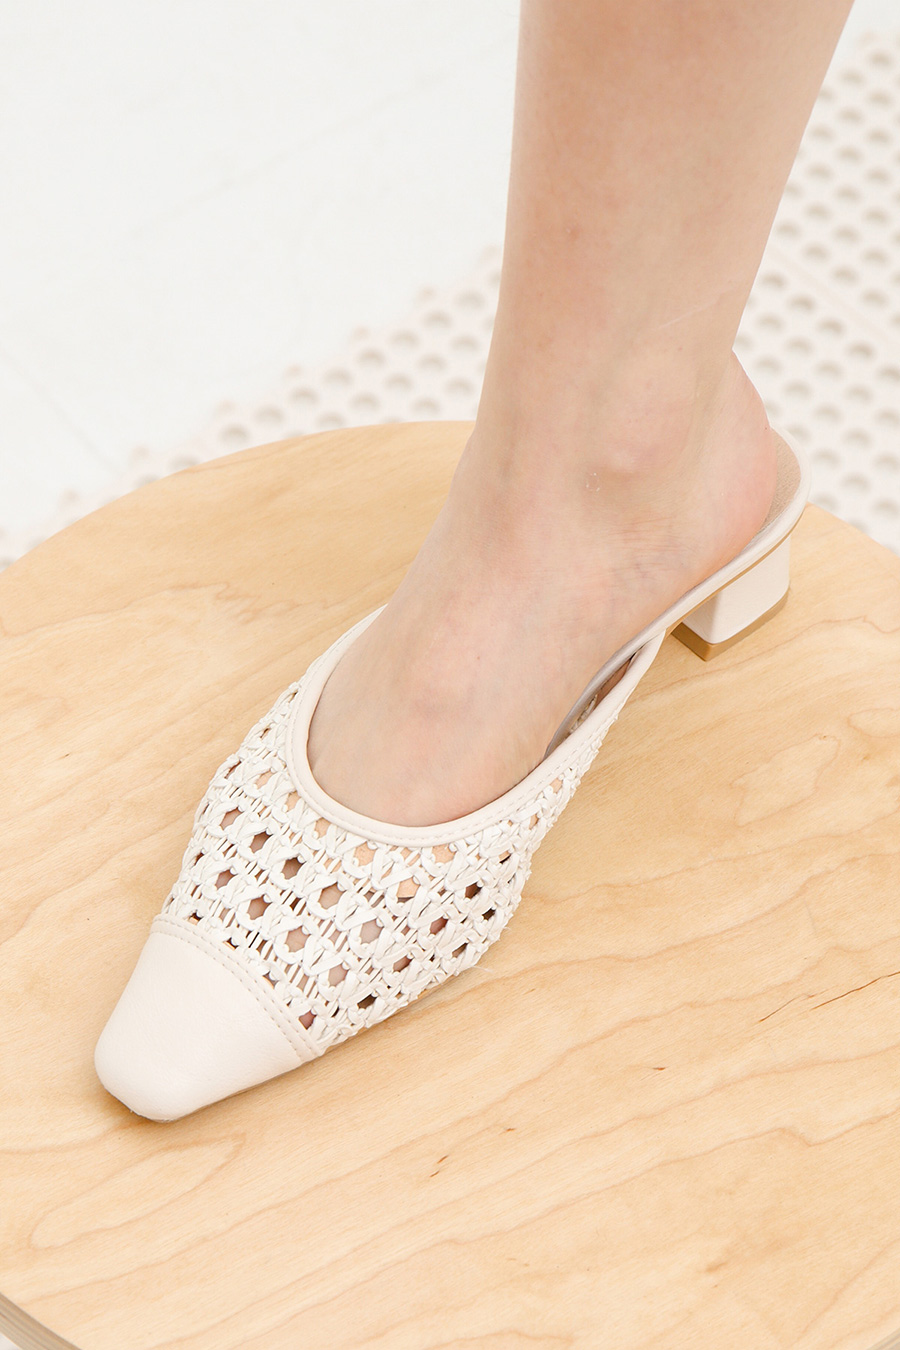 RAVEN SHOES - IVORY